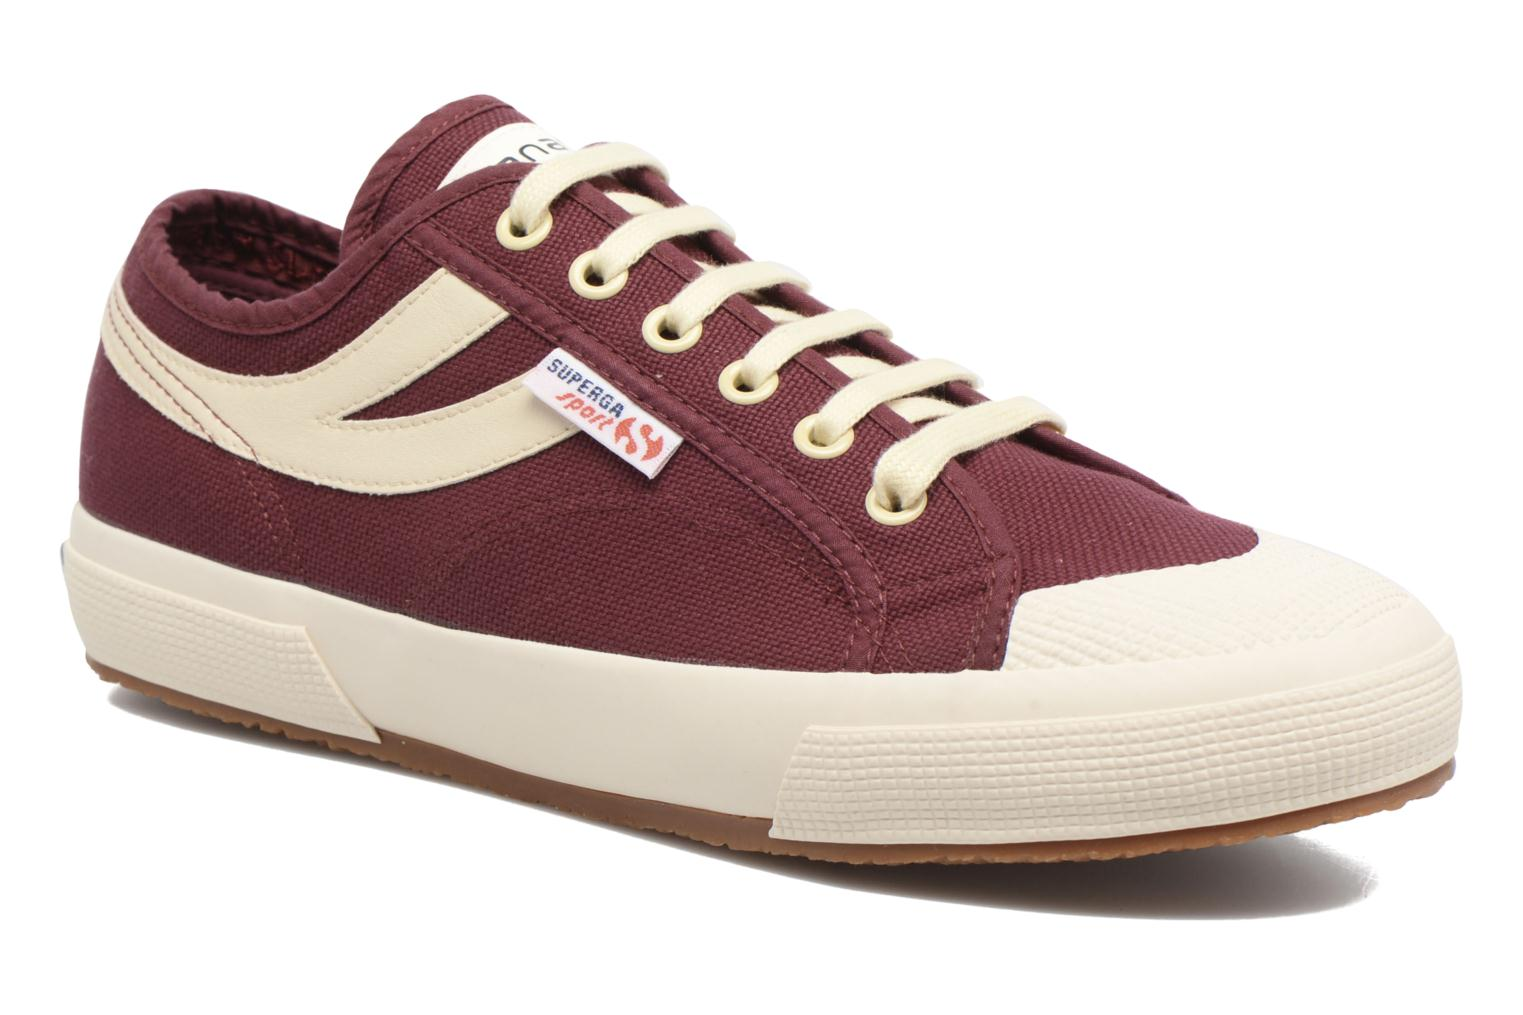 Sneakers 2750 Cotu Panatta by Superga